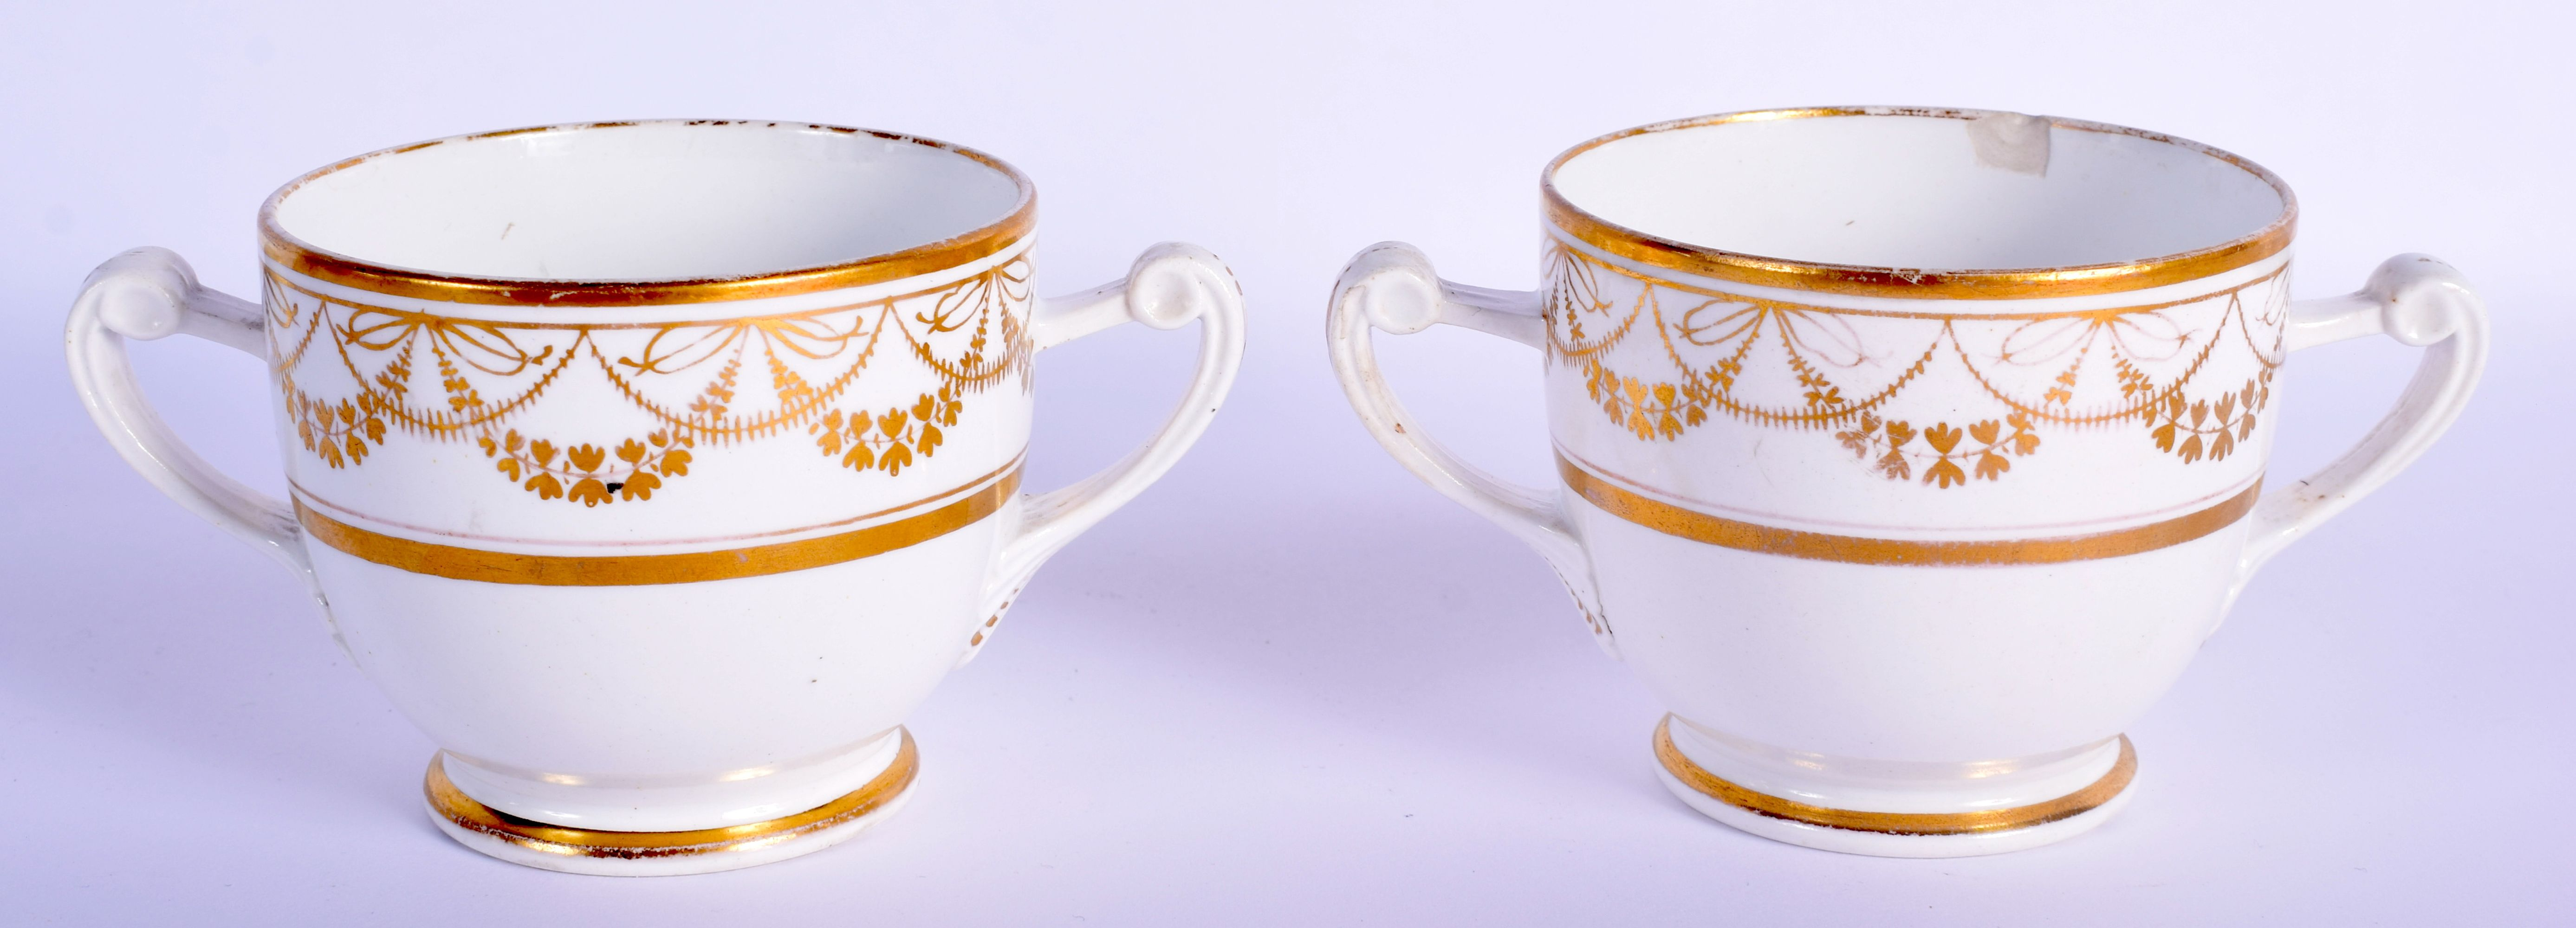 A PAIR OF EARLY 19TH CENTURY TWIN HANDLED GILDED CUPS AND SAUCERS Coalport or Derby, painted with ne - Image 2 of 3